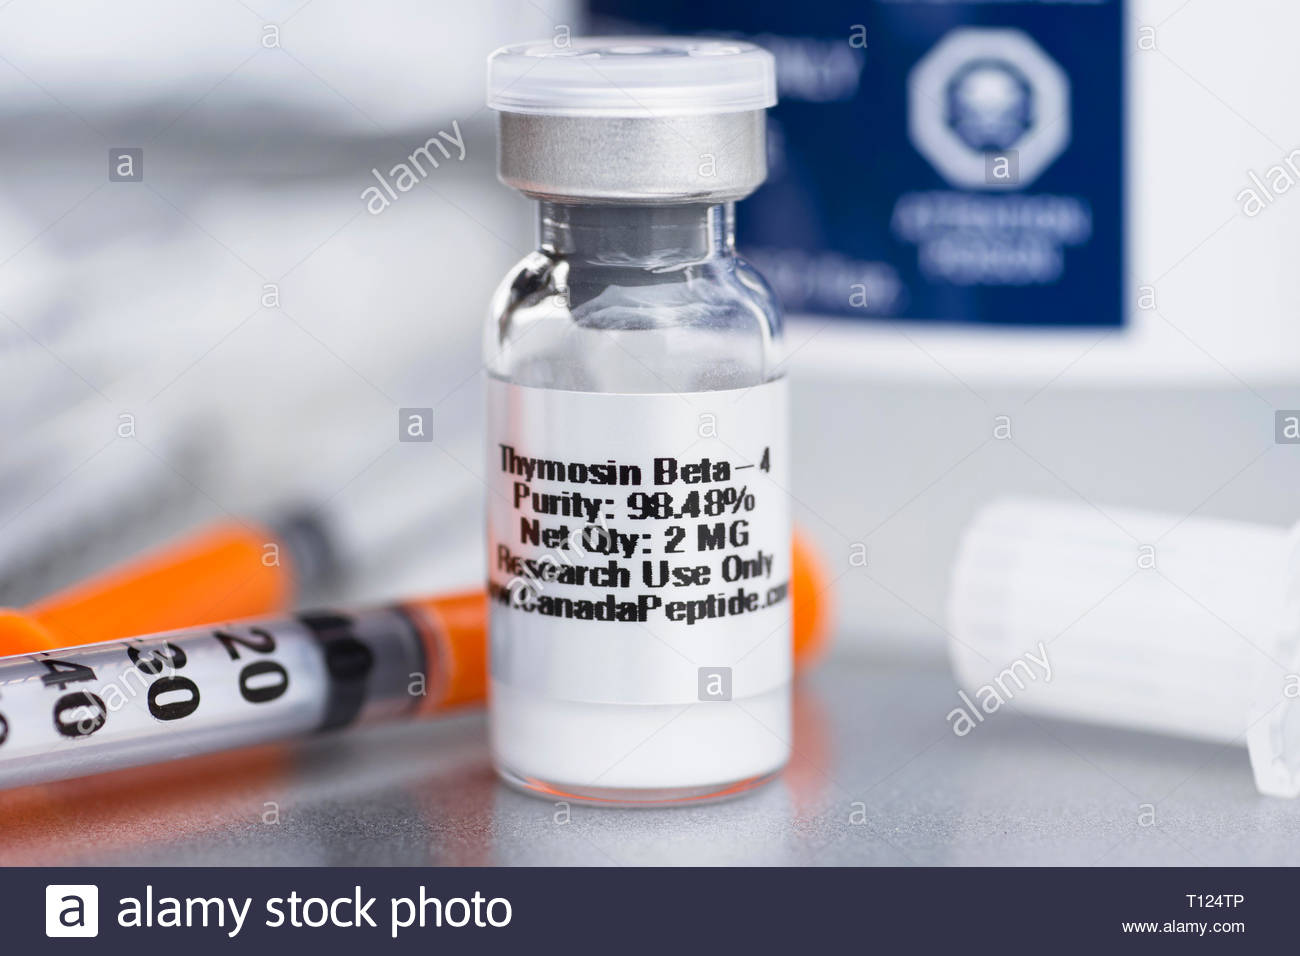 Thymosin Beta 4, TB-500 Peptide, Peptides Vial - Stock Image